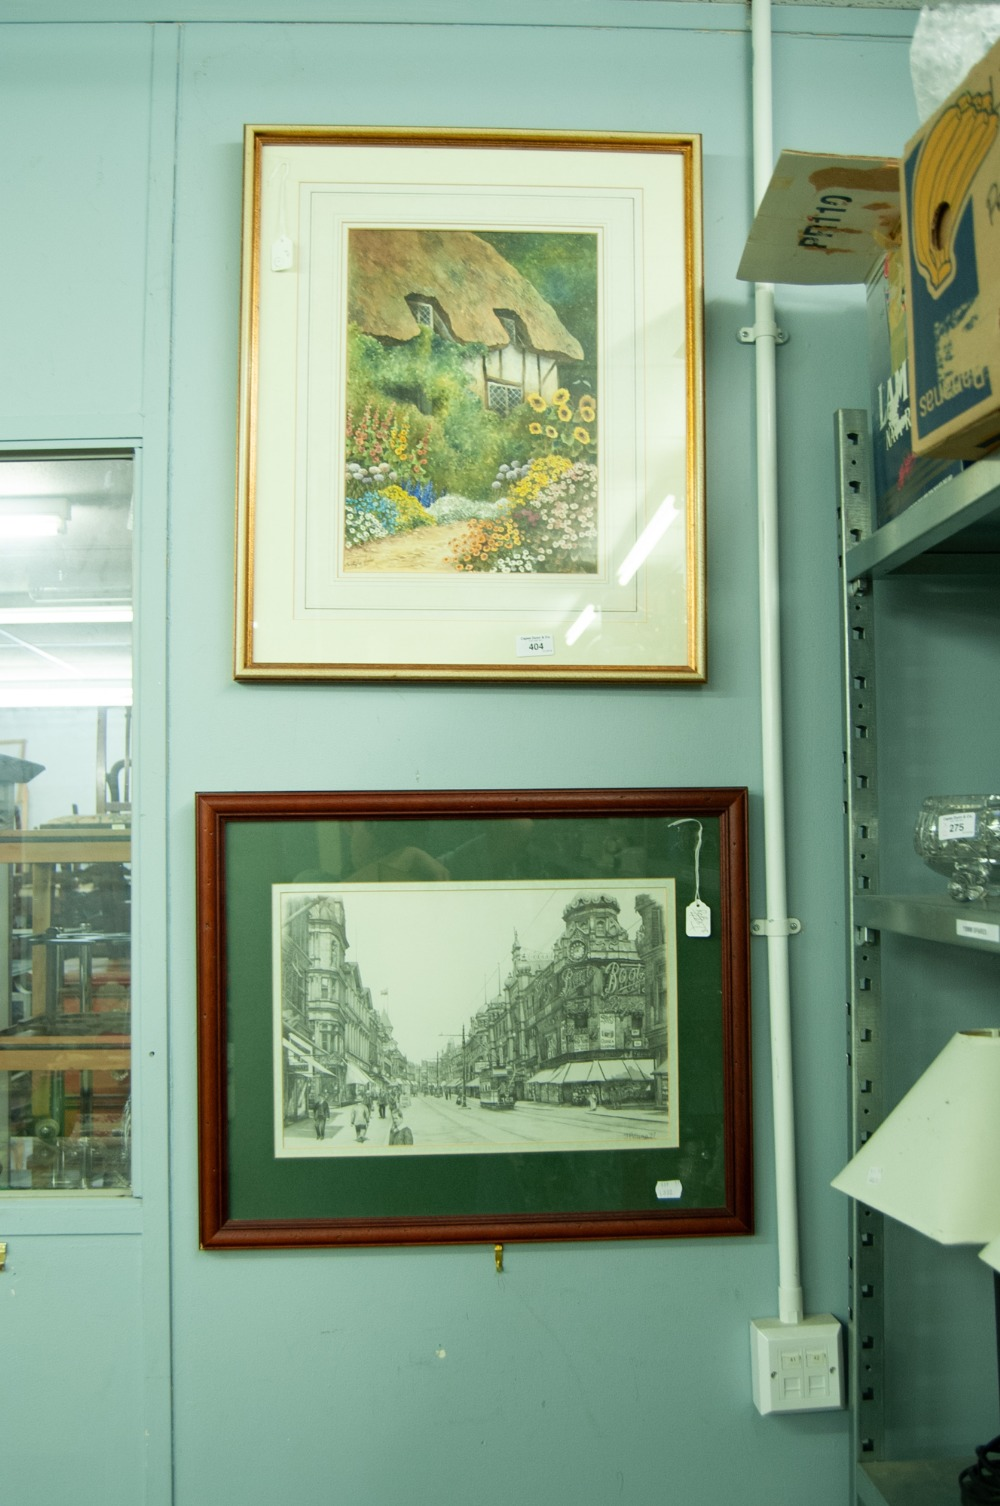 """Lot 404 - J. PILLING (MODERN) PENCIL DRAWING A Yorkshire townscape with trams, SIGNED AND DATED (19) 77 10"""""""